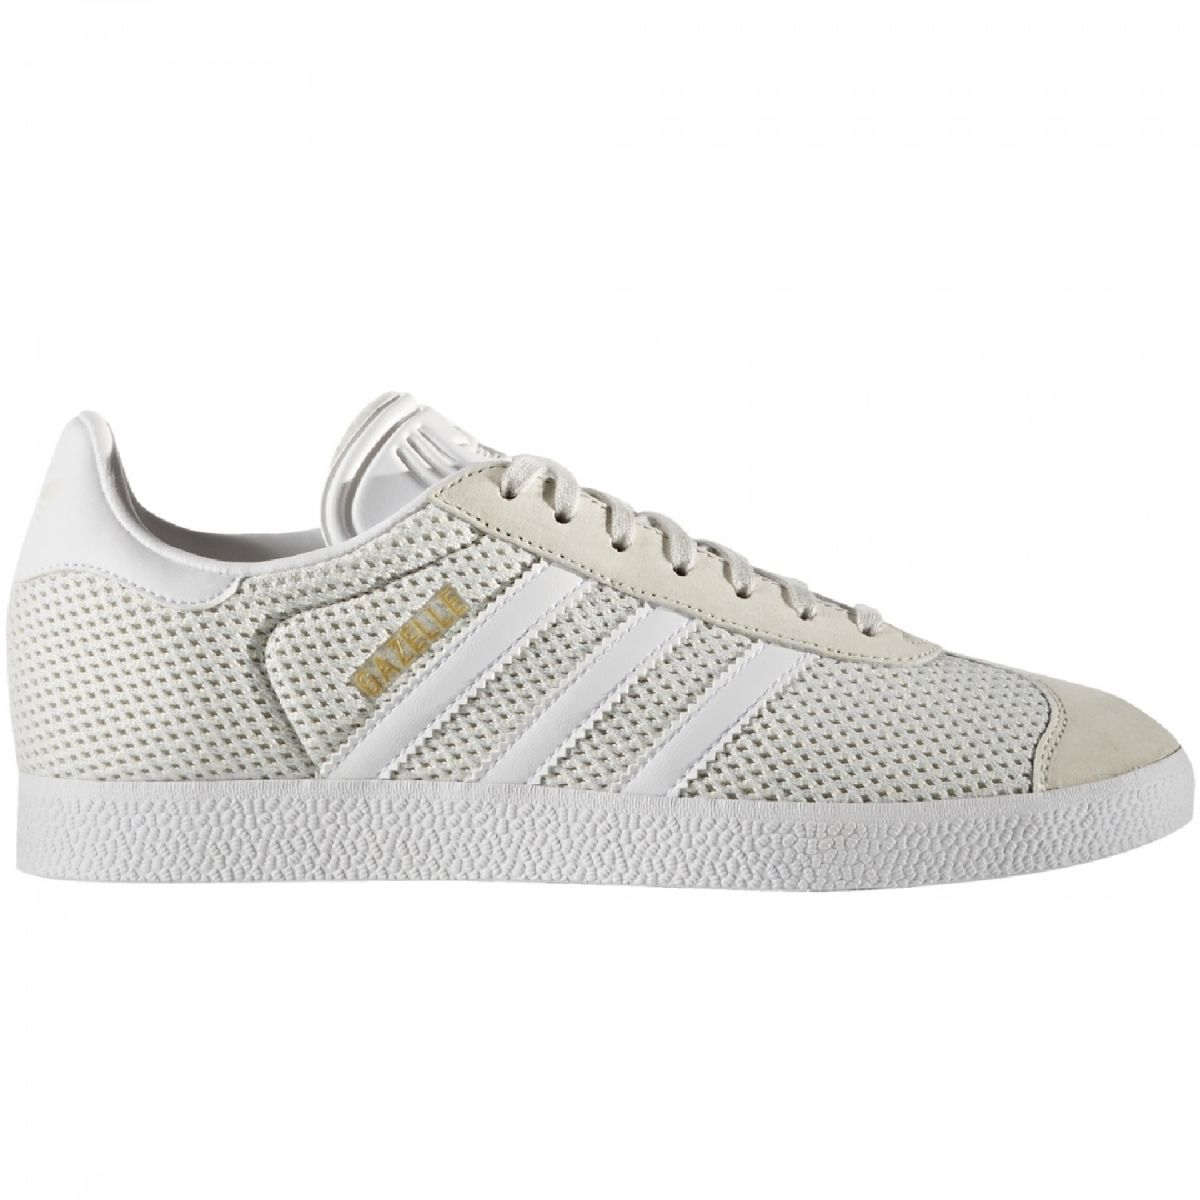 adidas originals gazelle sneaker damen schuhe beige wei. Black Bedroom Furniture Sets. Home Design Ideas